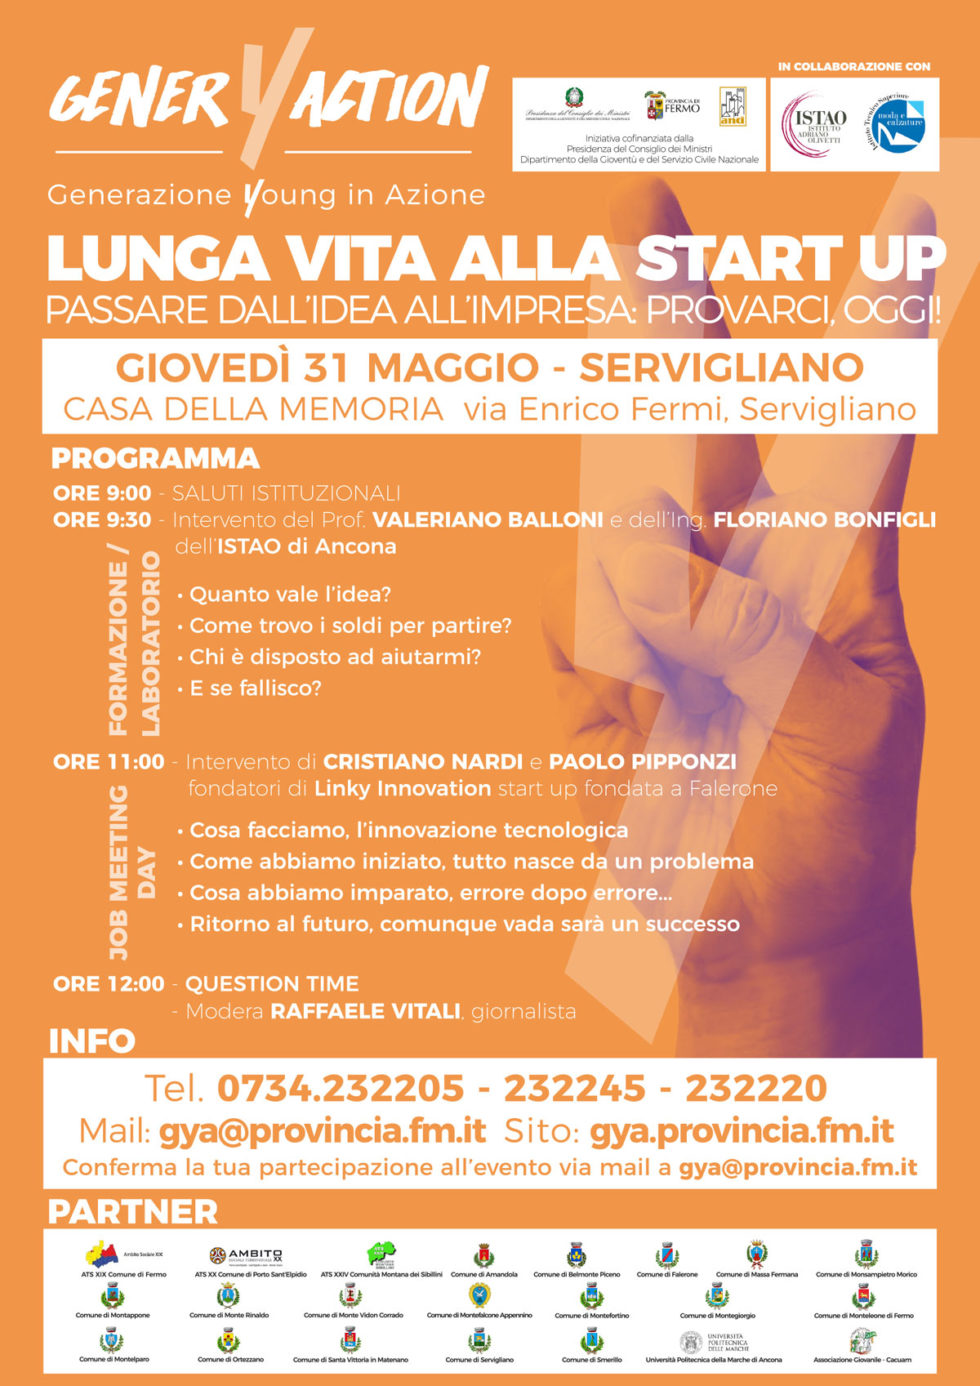 Lunga vita alla start up